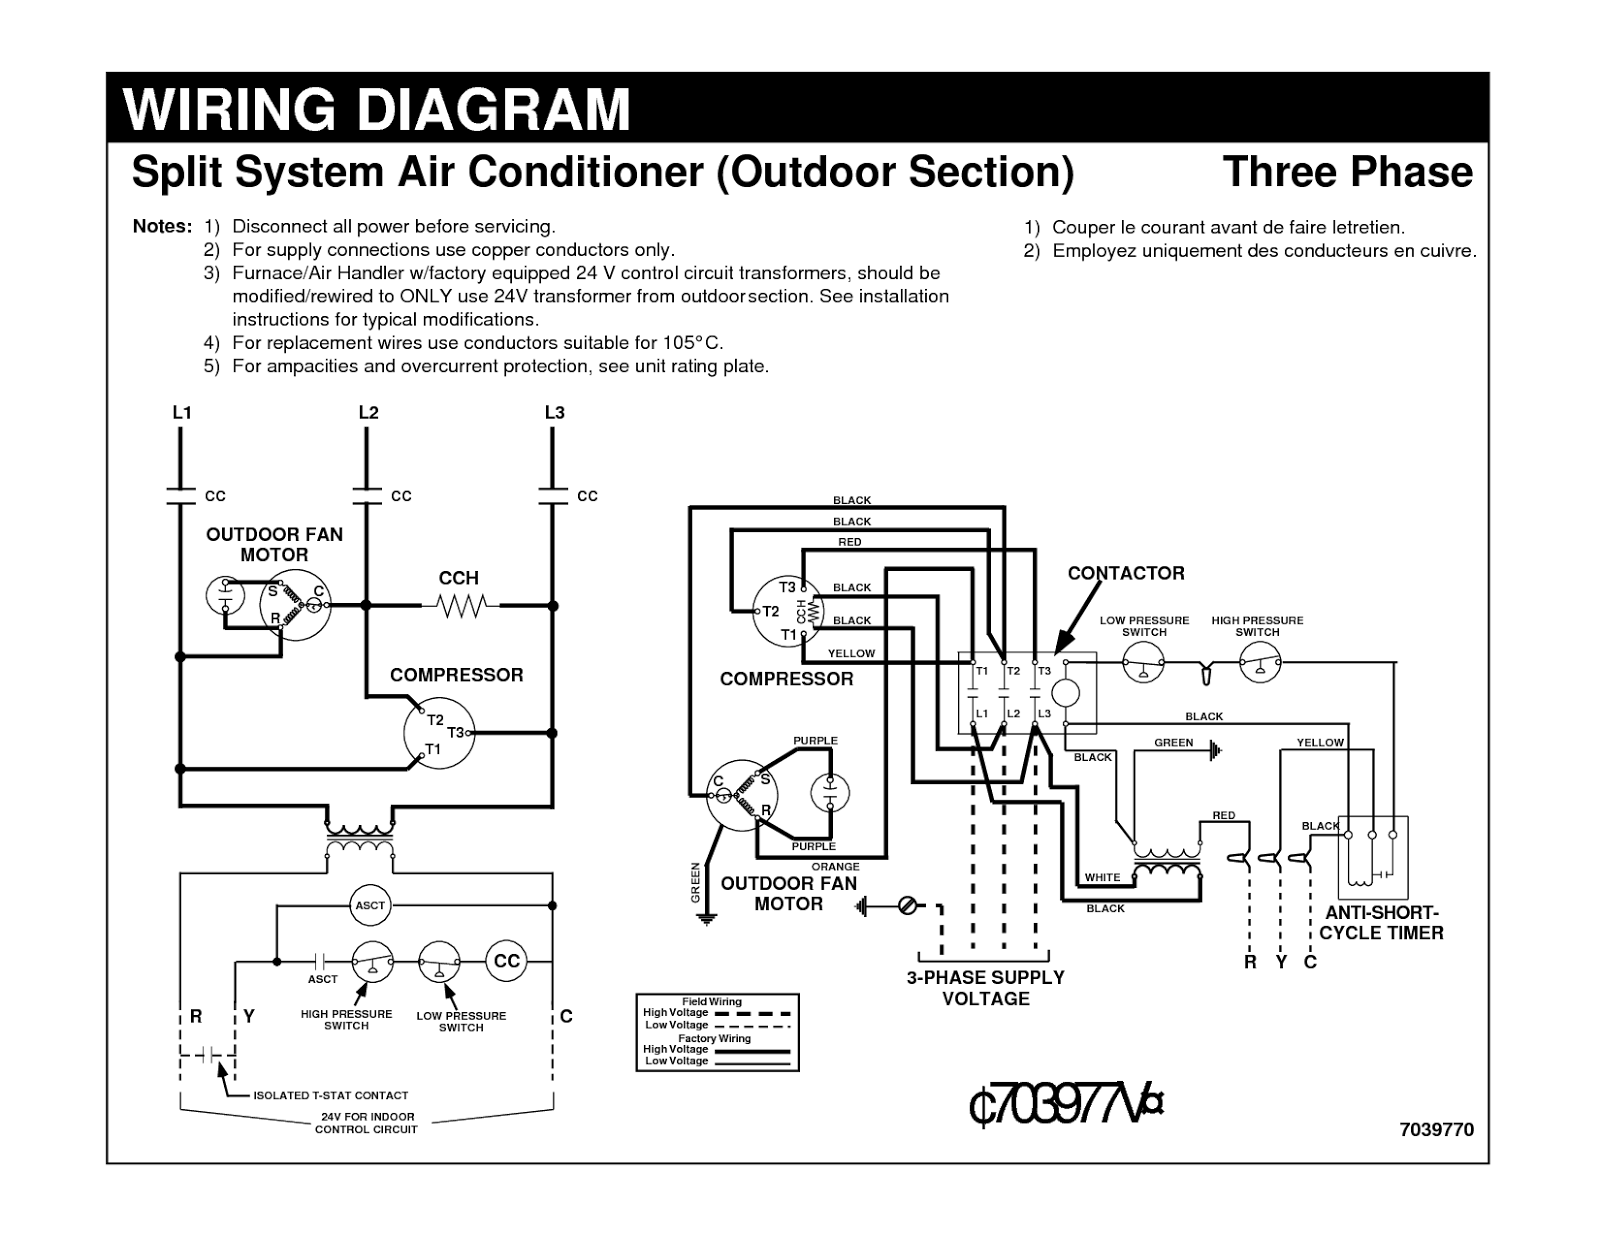 wiring+diagram+in+the+user+manual electrical wiring diagrams for air conditioning systems part one aftermarket air conditioning wiring diagram at webbmarketing.co